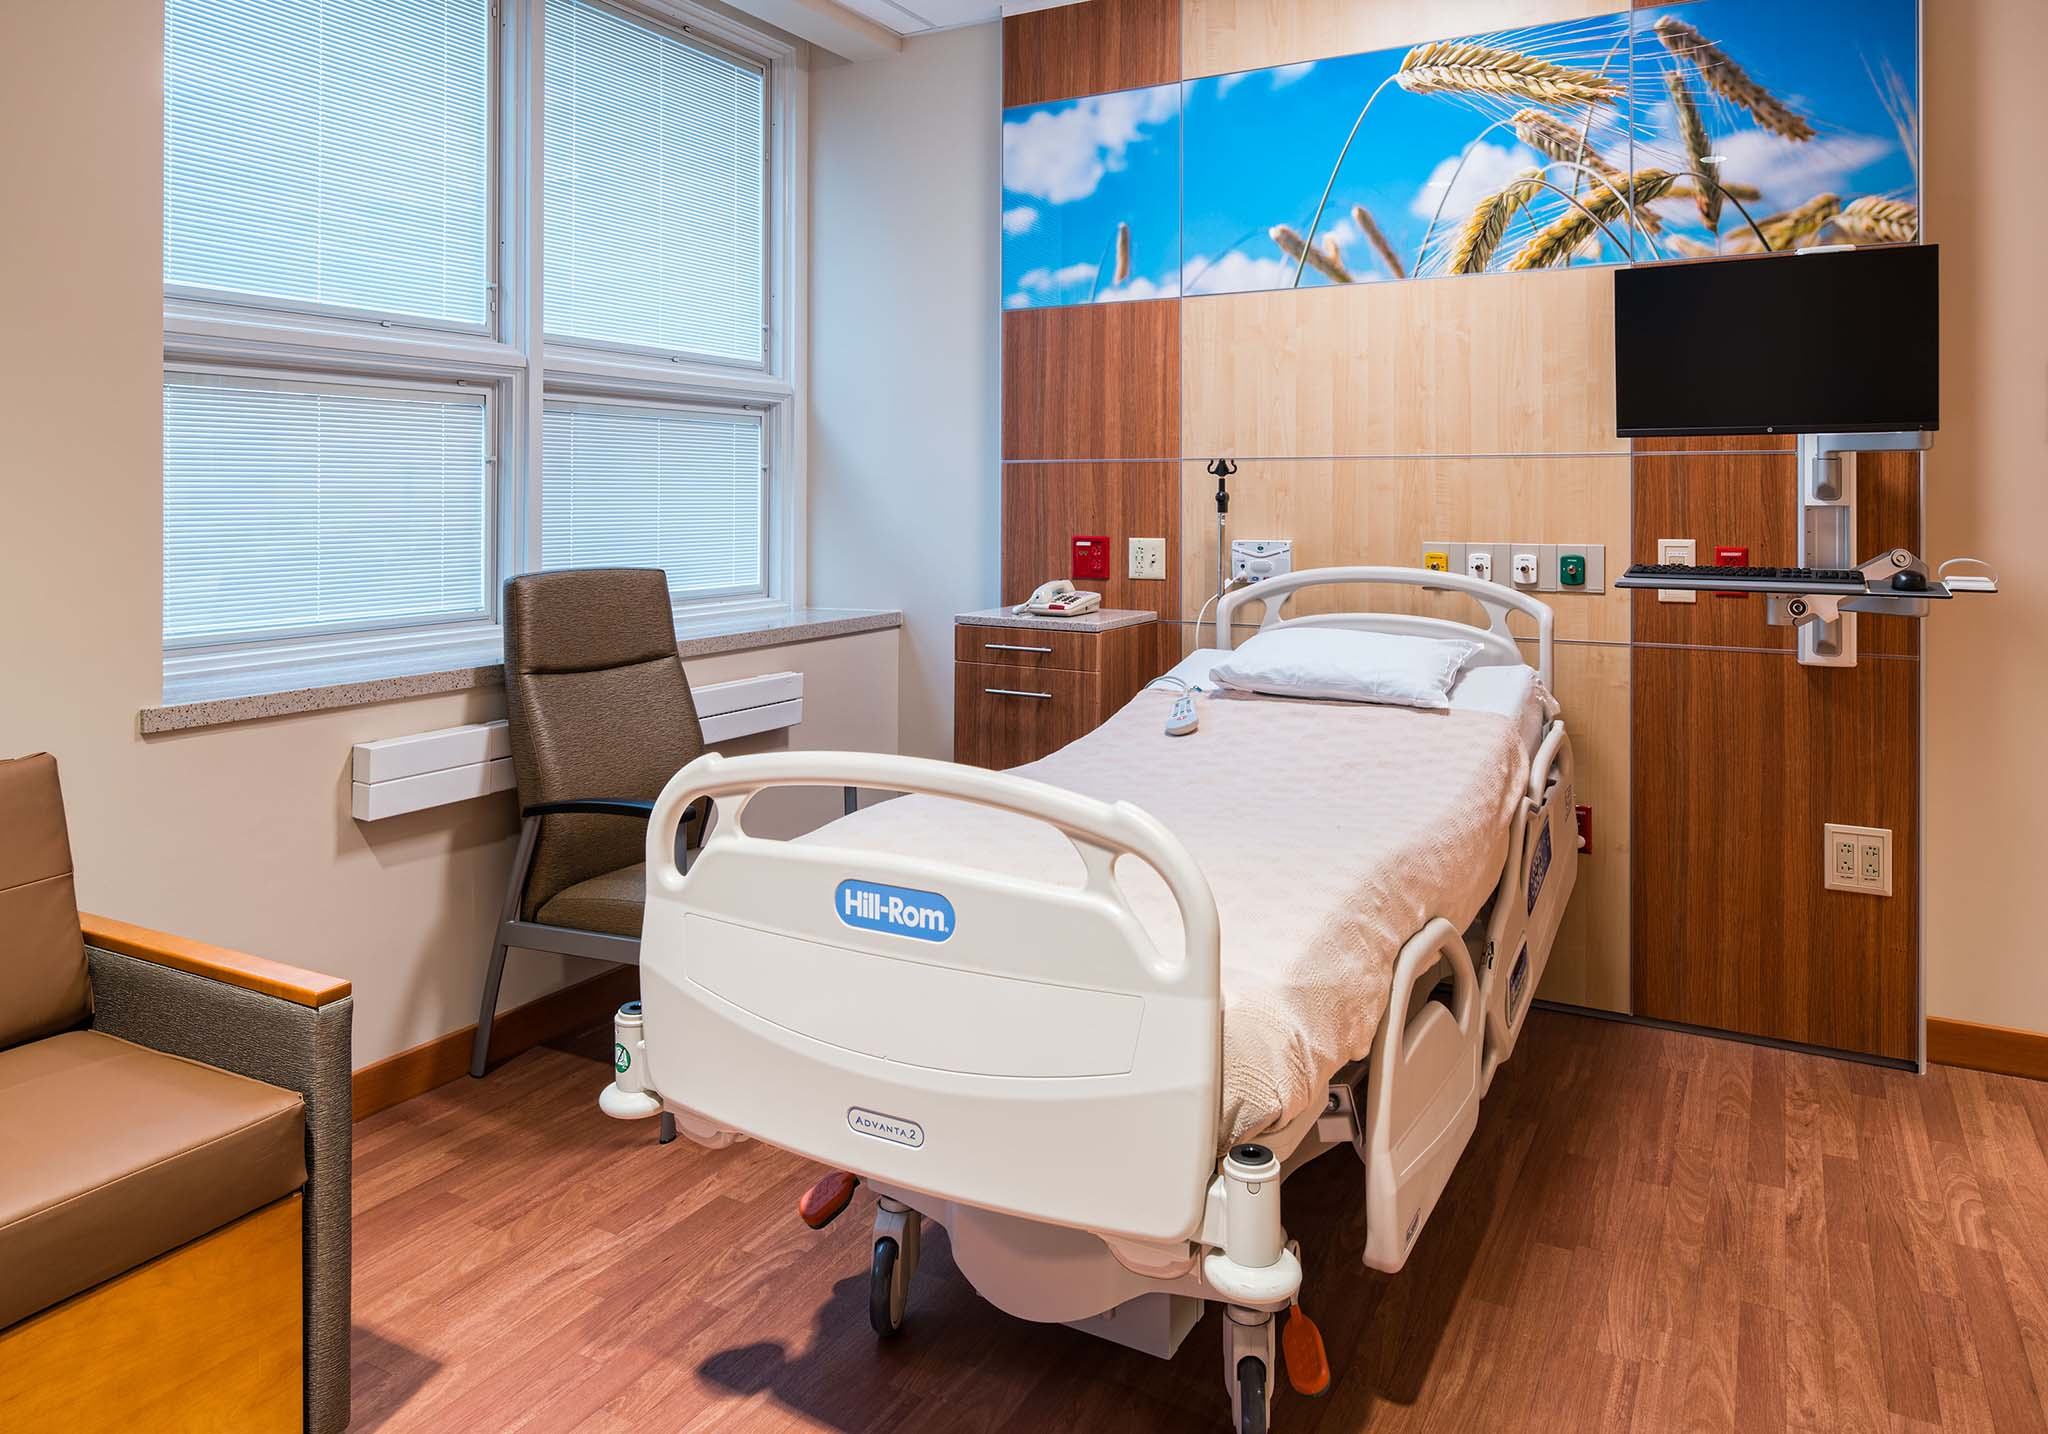 healthcare room improve with technology